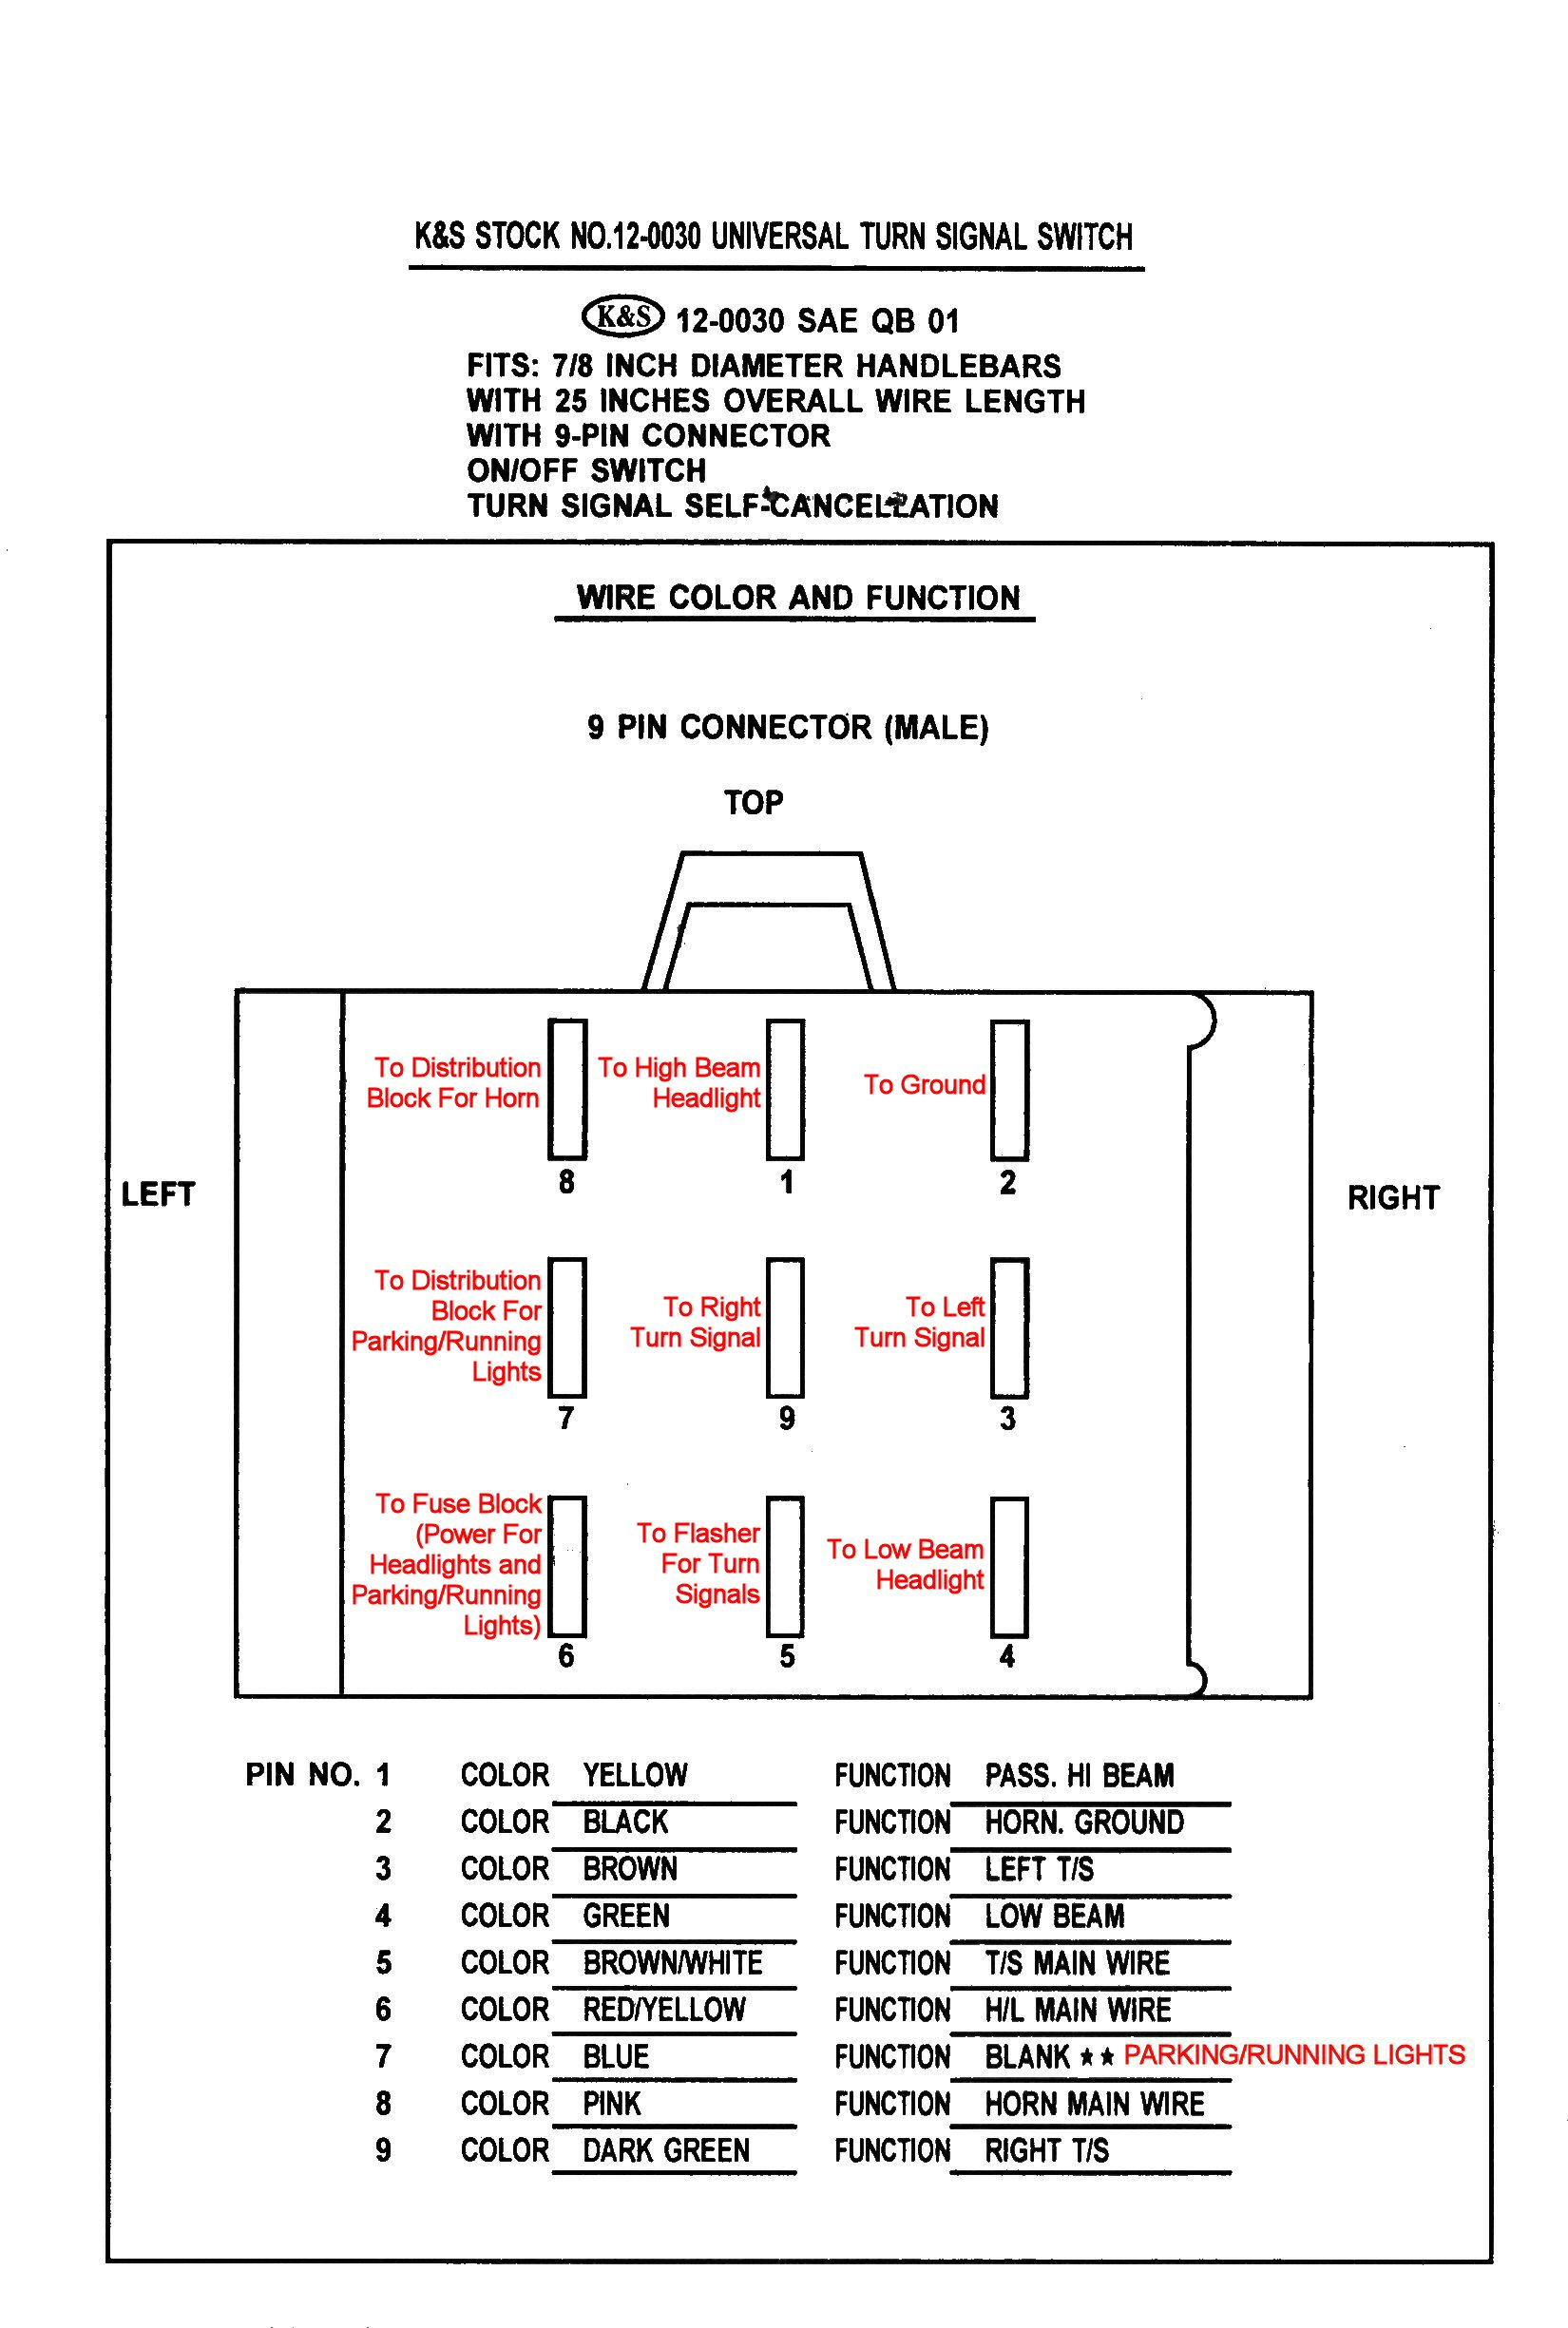 Universal Turn Signal Switch Wiring Diagram from www.thisoldtractor.com